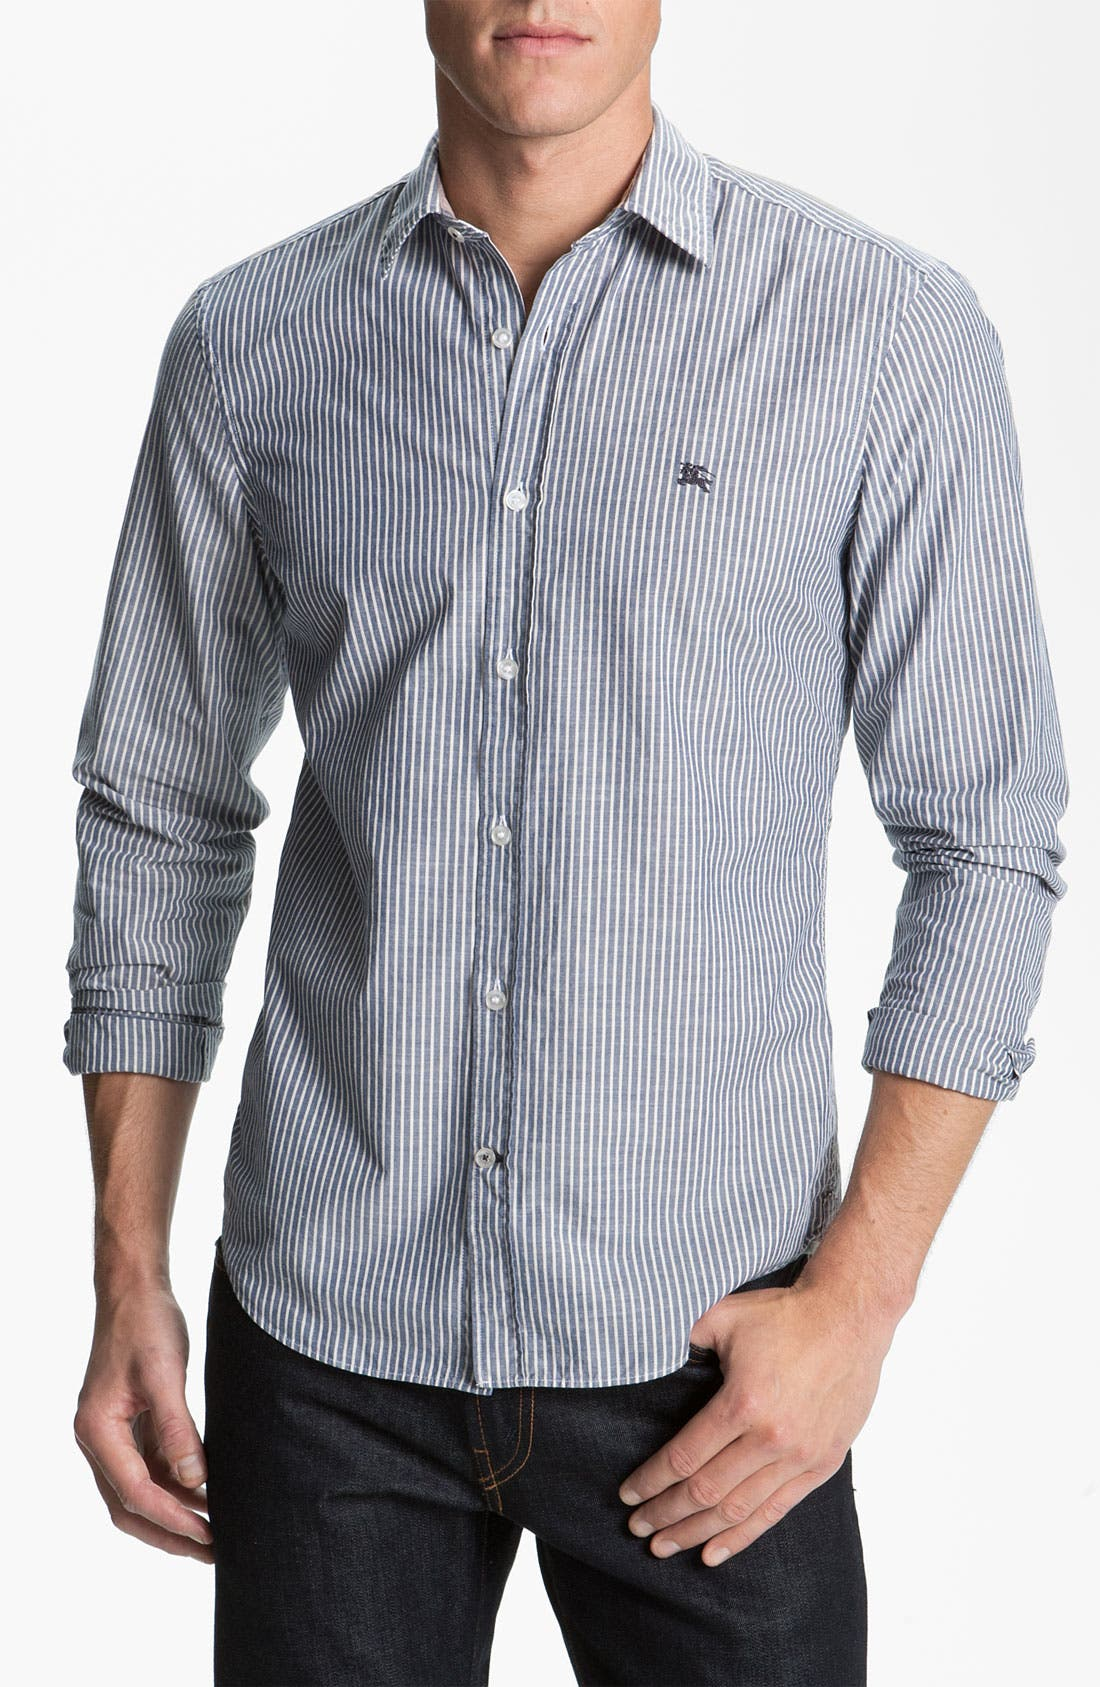 Alternate Image 1 Selected - Burberry Brit Stripe Trim Fit Sport Shirt